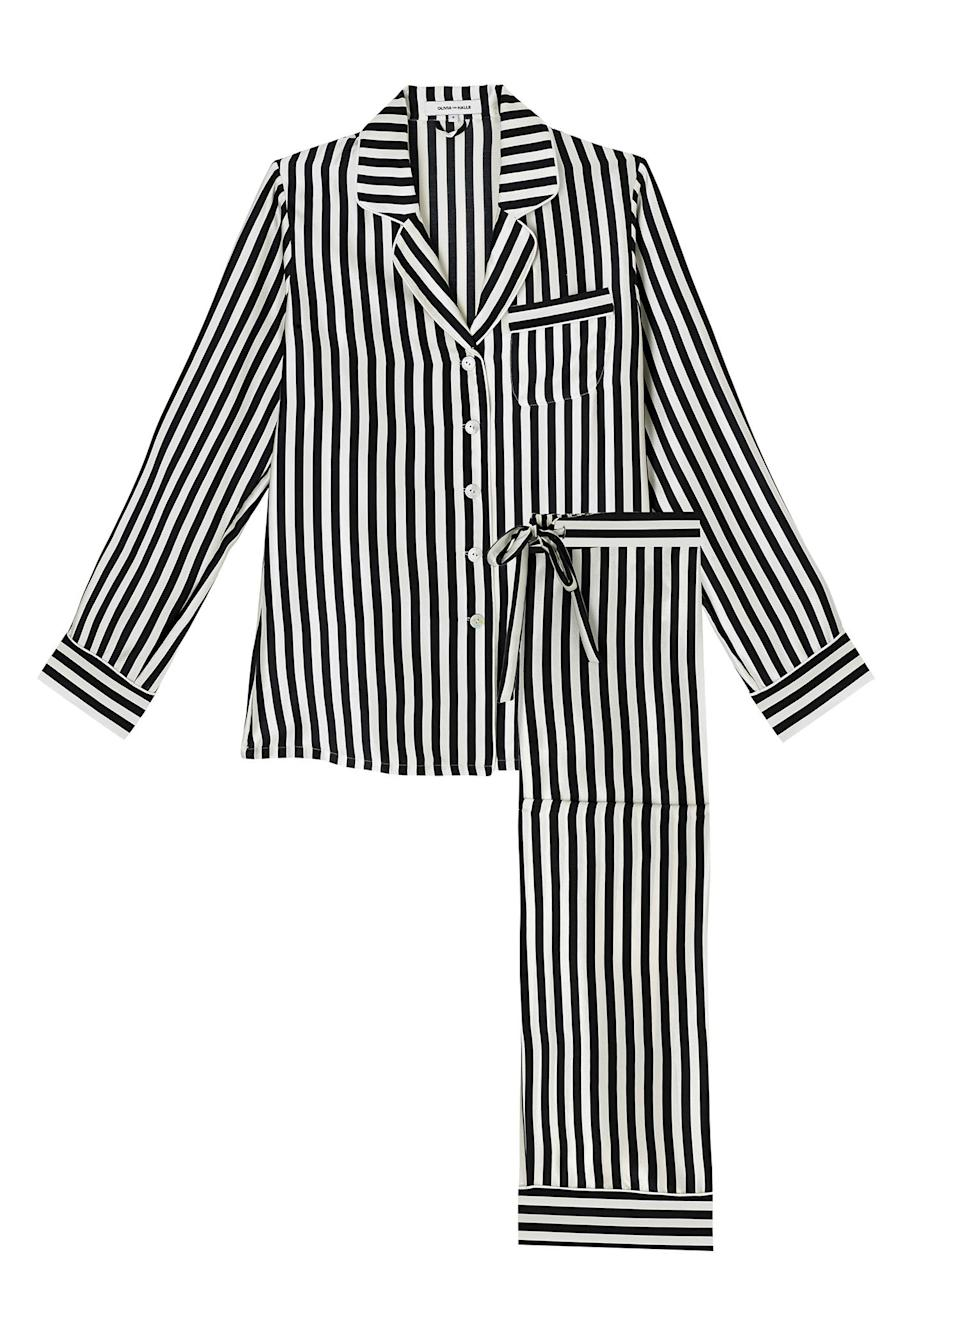 """<p>Struggling to get a good night's kip can be frustrating but it's a great excuse to invest in a brand pew pair of PJs. We're after a luxuriously silky pair of Olivia von Halle's – opt for chic stripes to nail bedroom dressing in one fell zzz. <a href=""""https://oliviavonhalle.com/uk/shop/by-product/silk-pyjamas/lila-nika-silk-pyjamas.html"""" rel=""""nofollow noopener"""" target=""""_blank"""" data-ylk=""""slk:Buy here"""" class=""""link rapid-noclick-resp""""><em>Buy here</em></a>. </p>"""